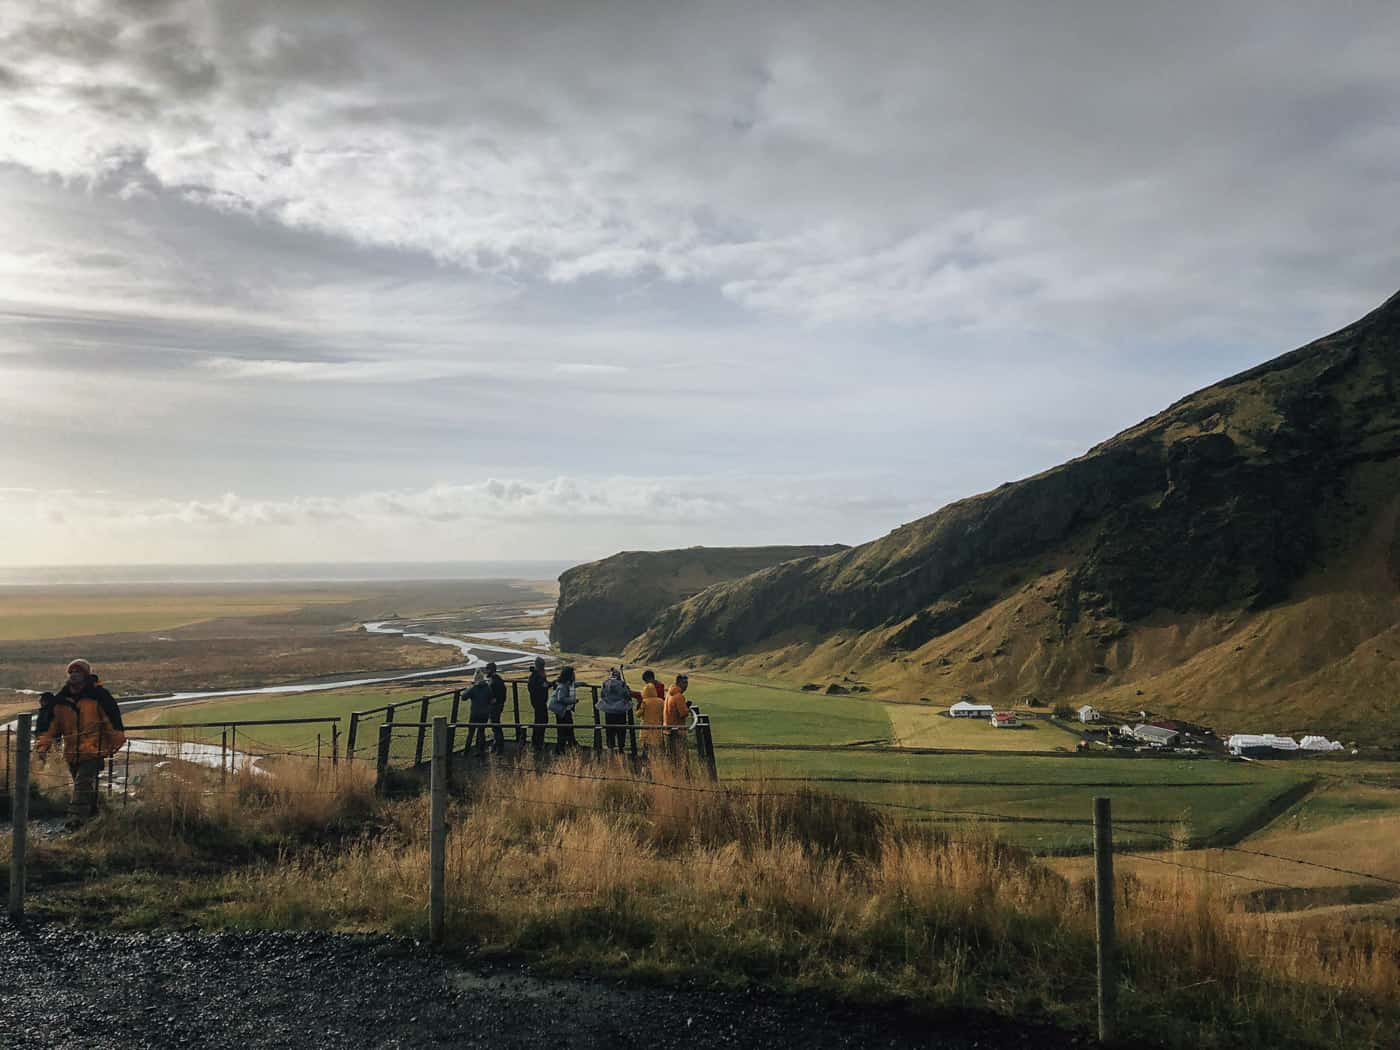 View from the top of Skogafoss Waterfall in Iceland